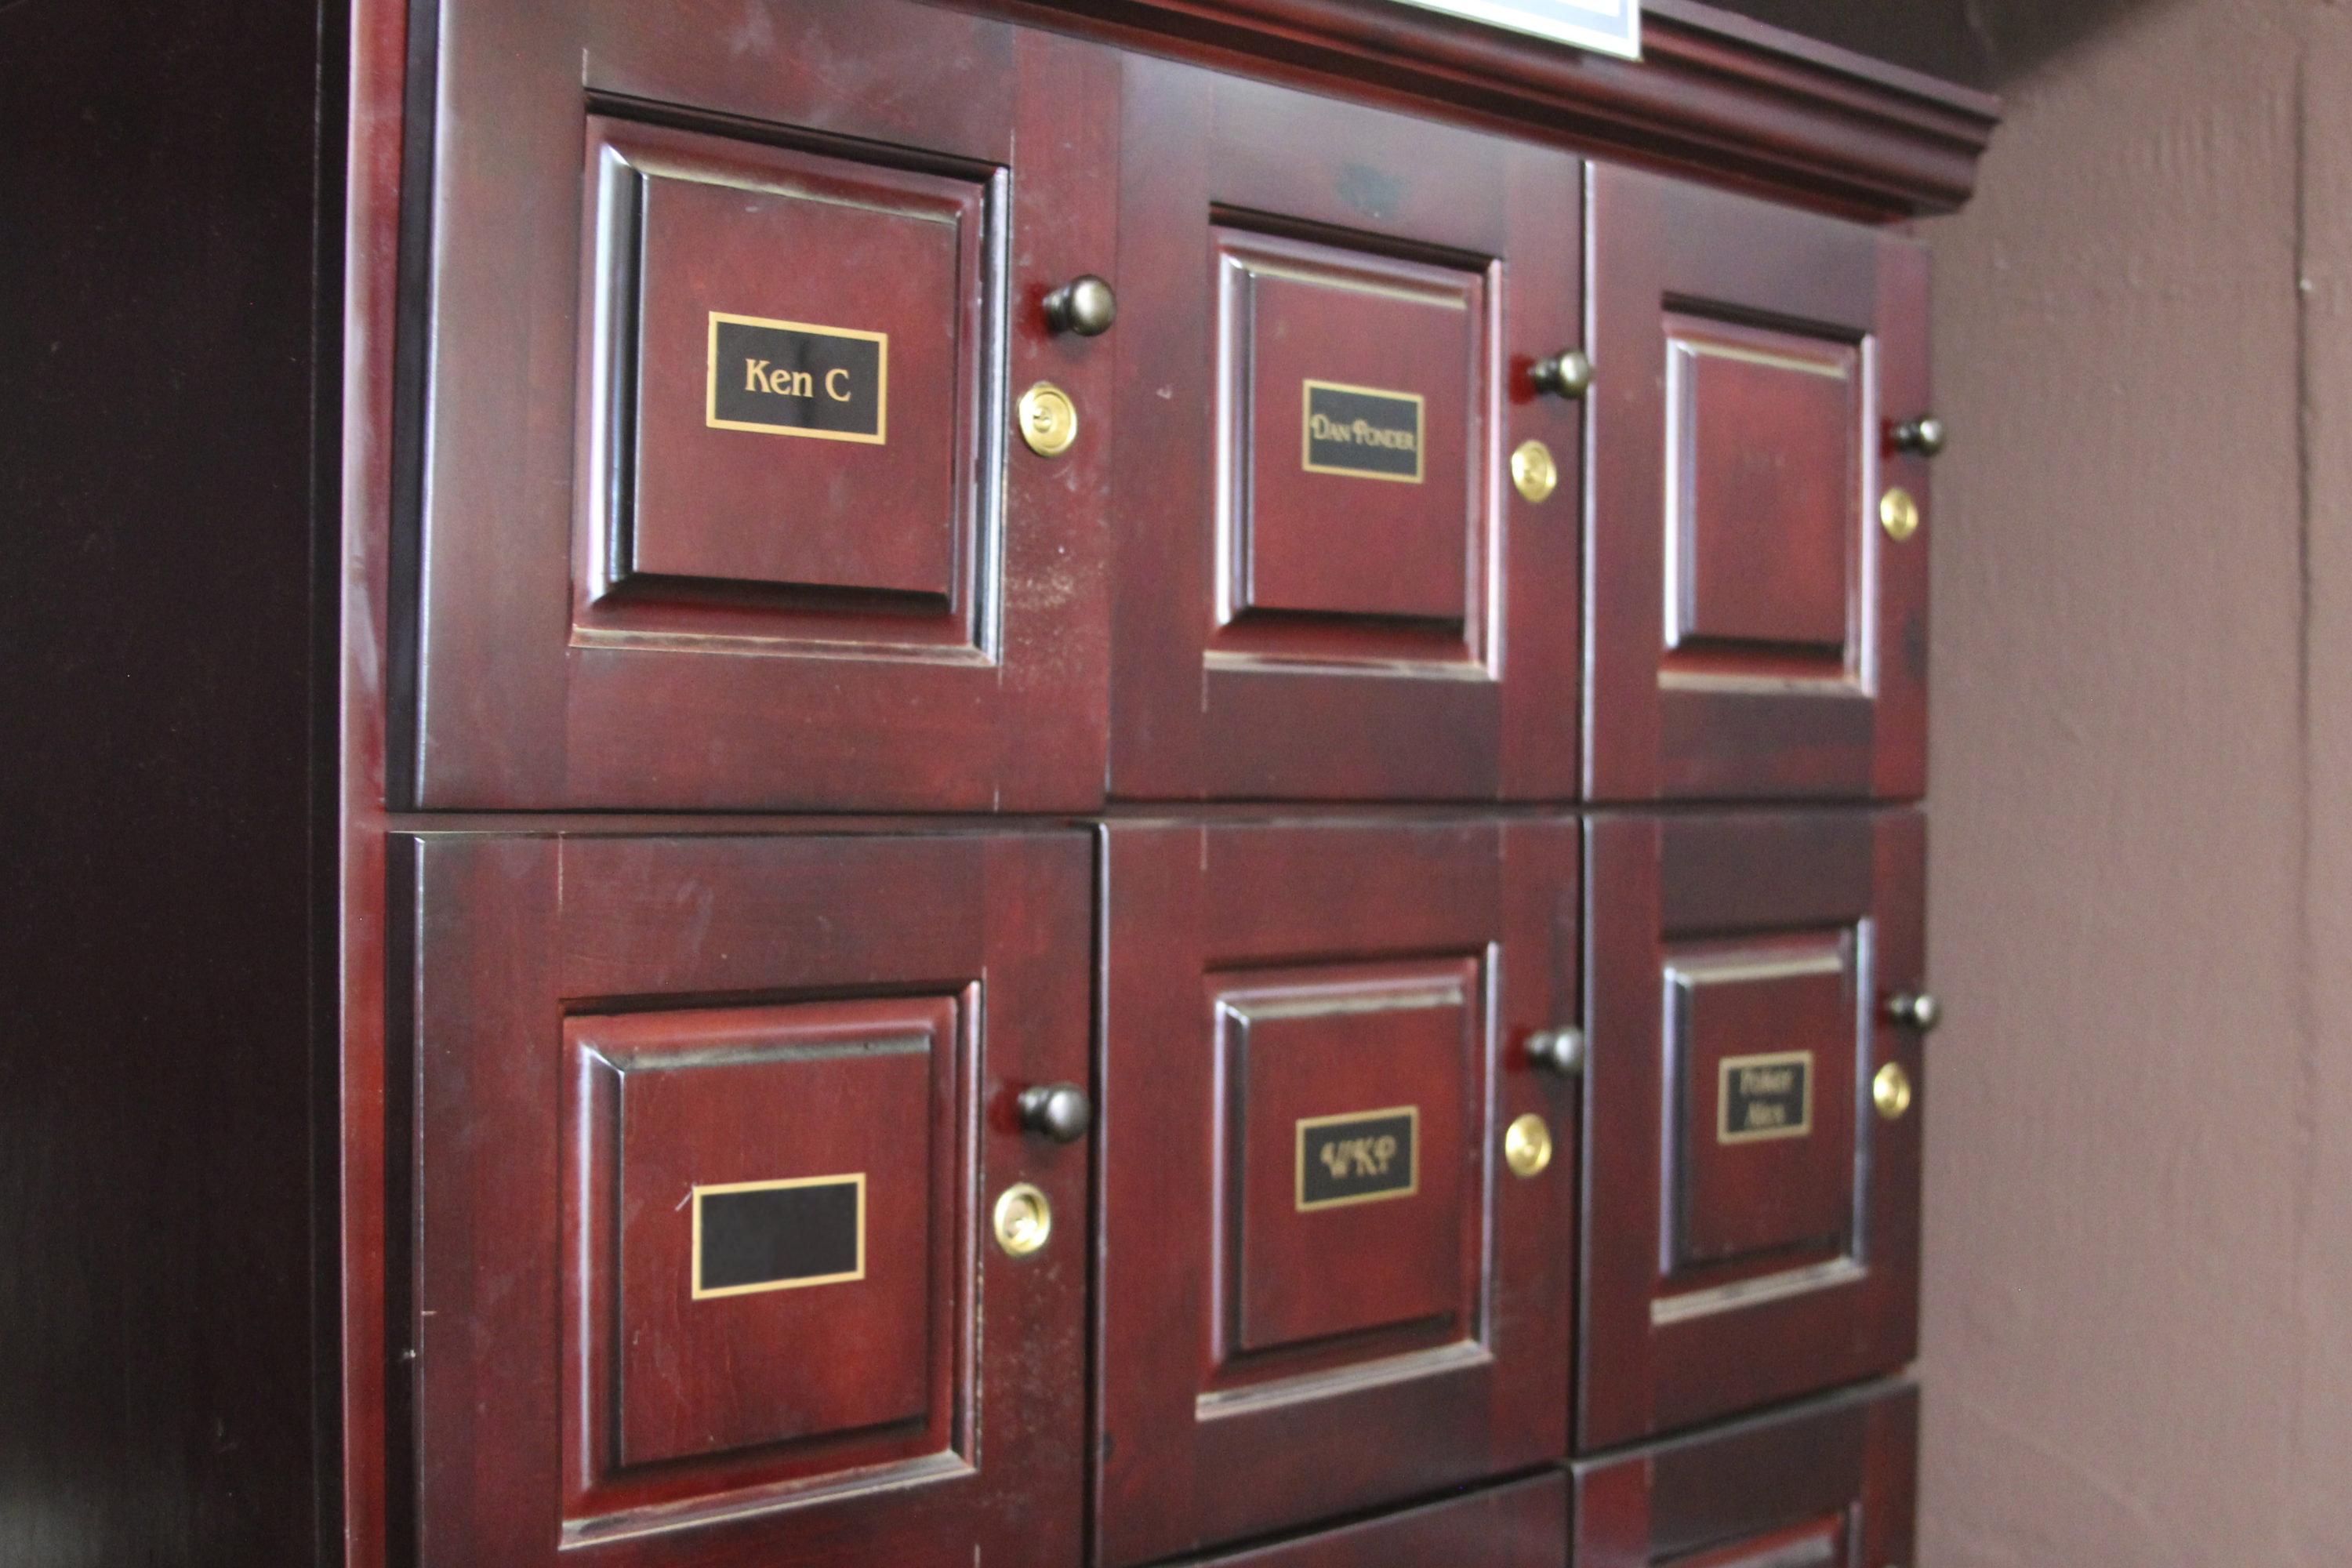 Store your cigar and other belongings in a personalized cigar locker.